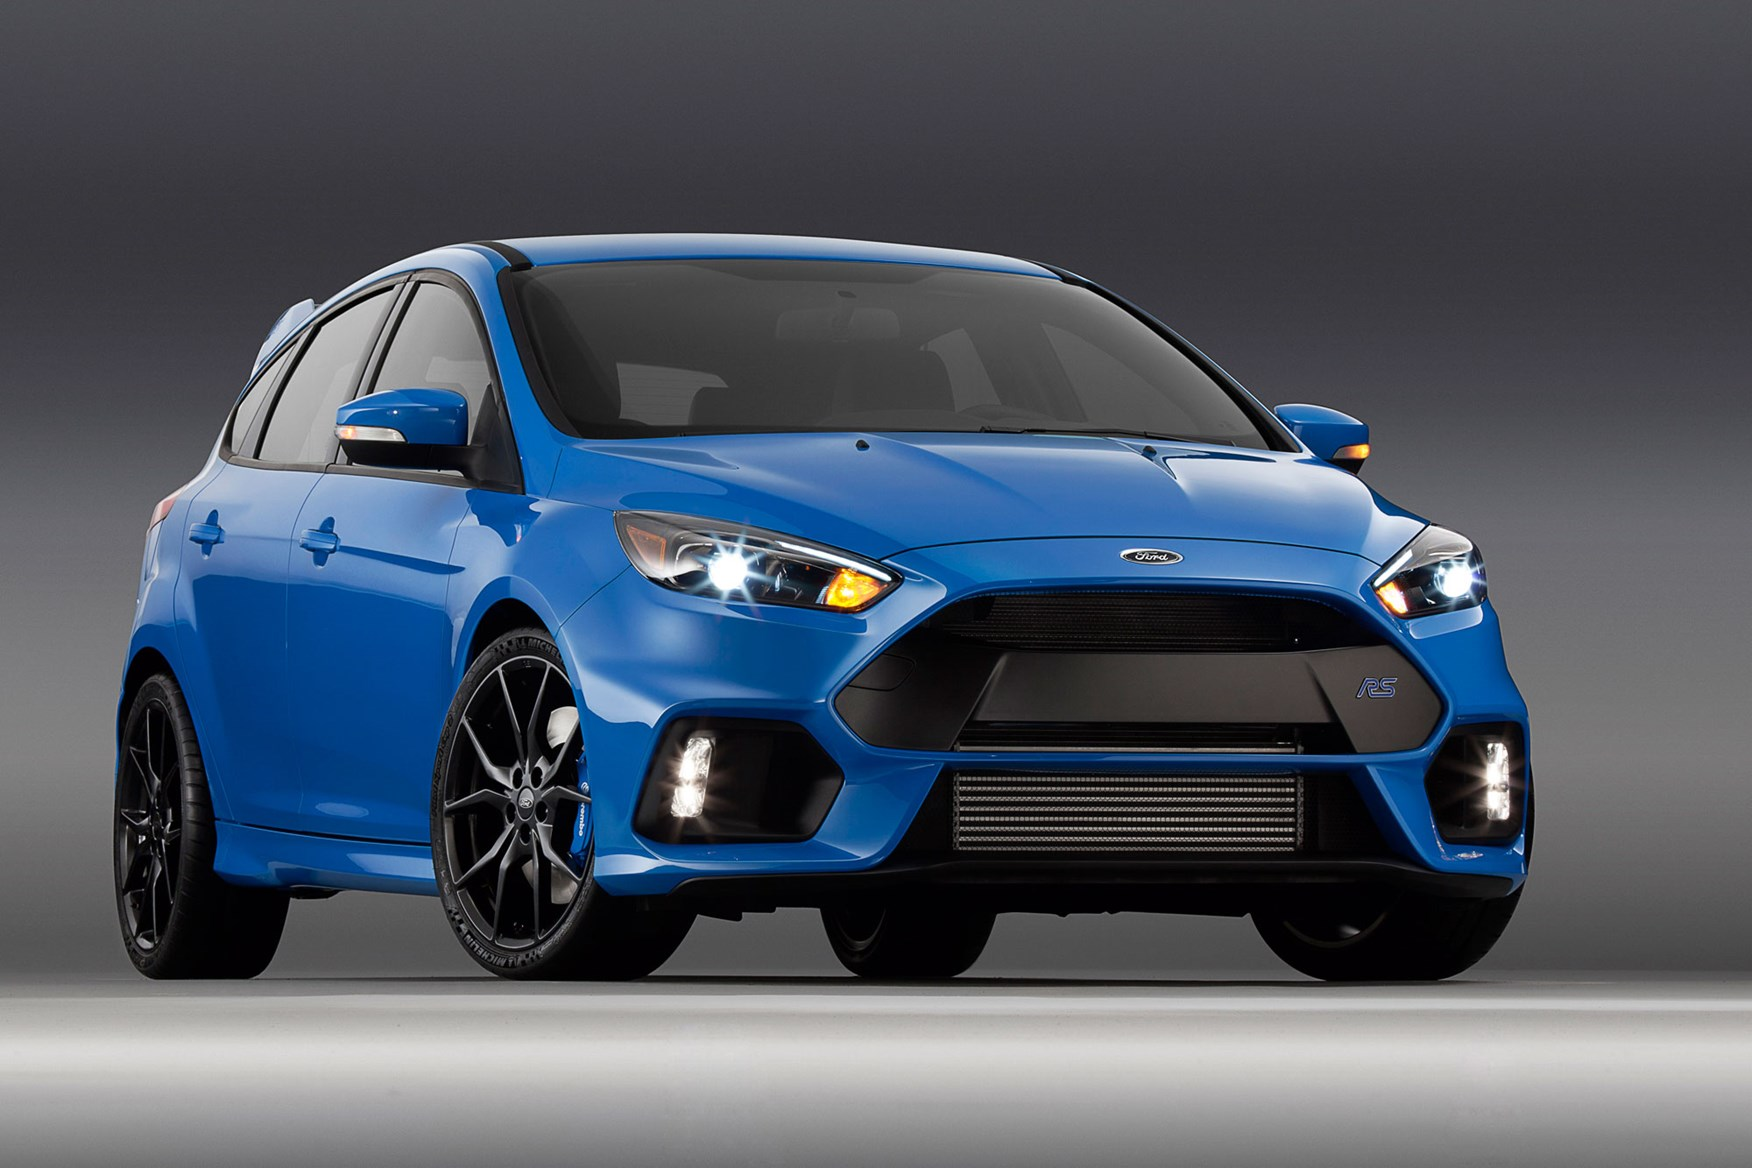 New car colors 2016 -  The New 2016 Ford Focus Rs In Nitrous Blue